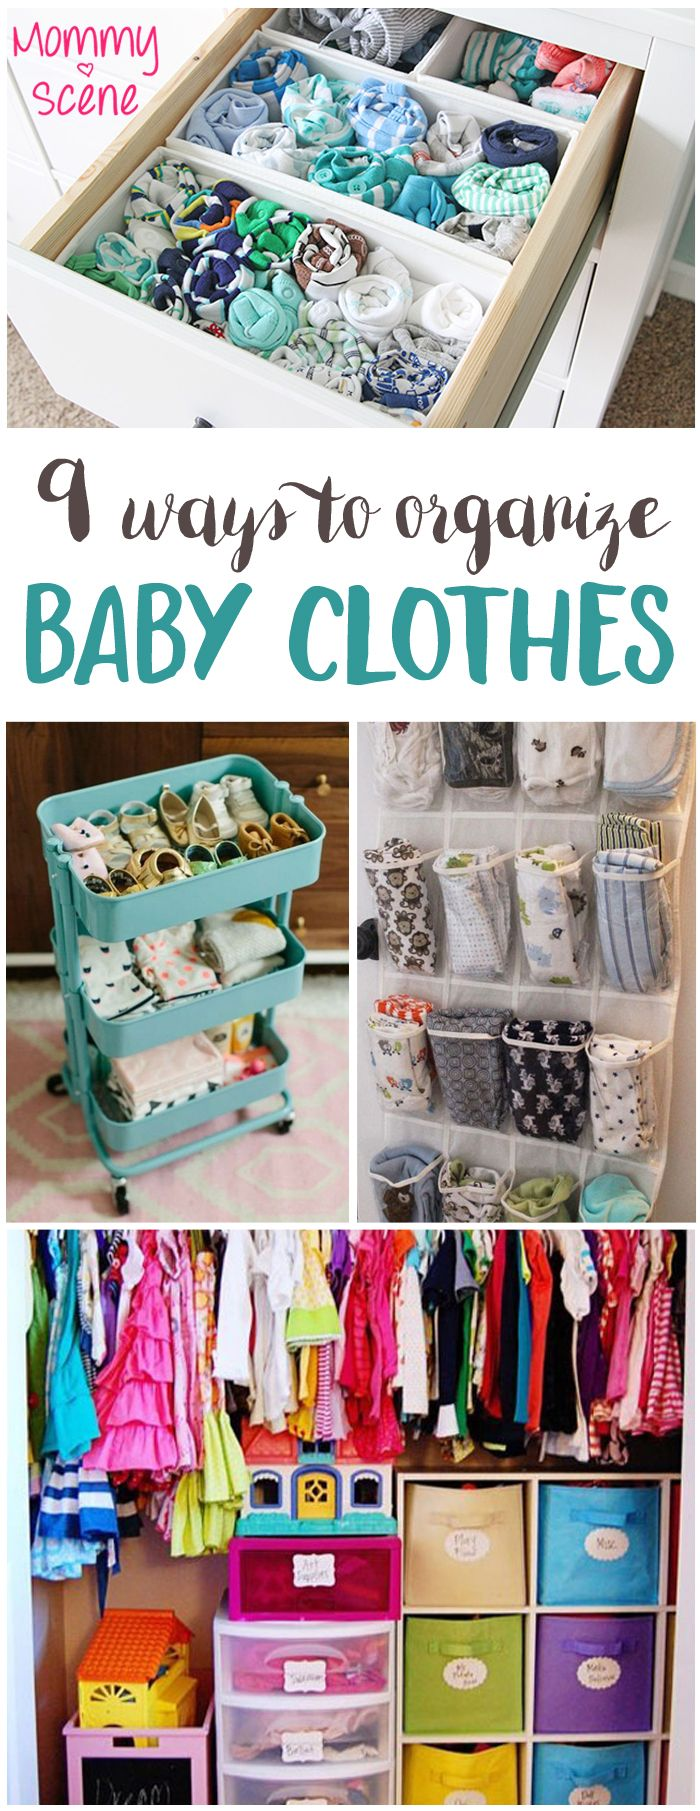 9 Ways To Organize Baby Clothes Storage And Diy